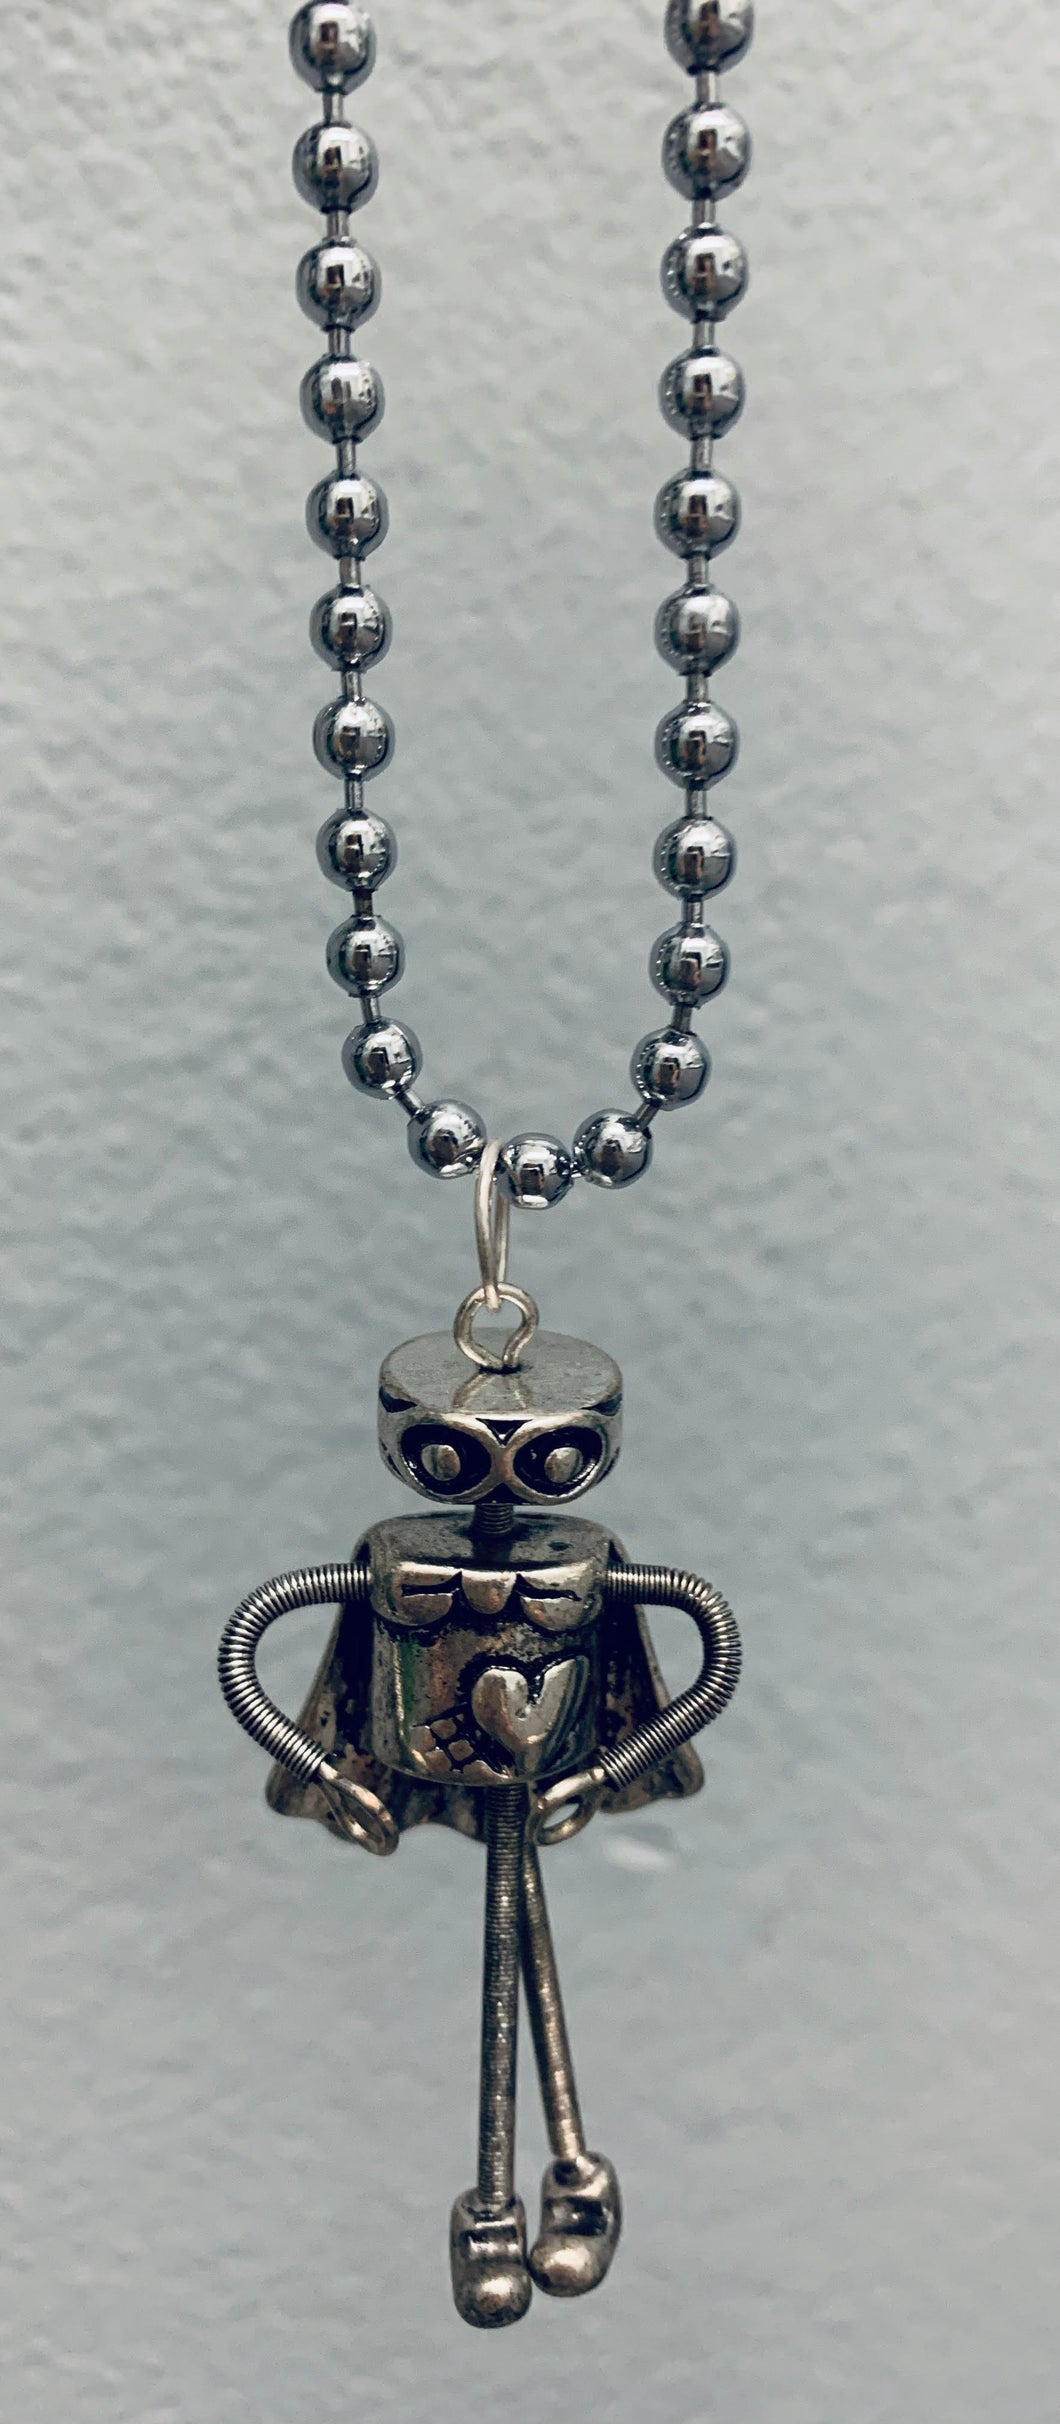 Robot Pendant on Ball Chain Necklace